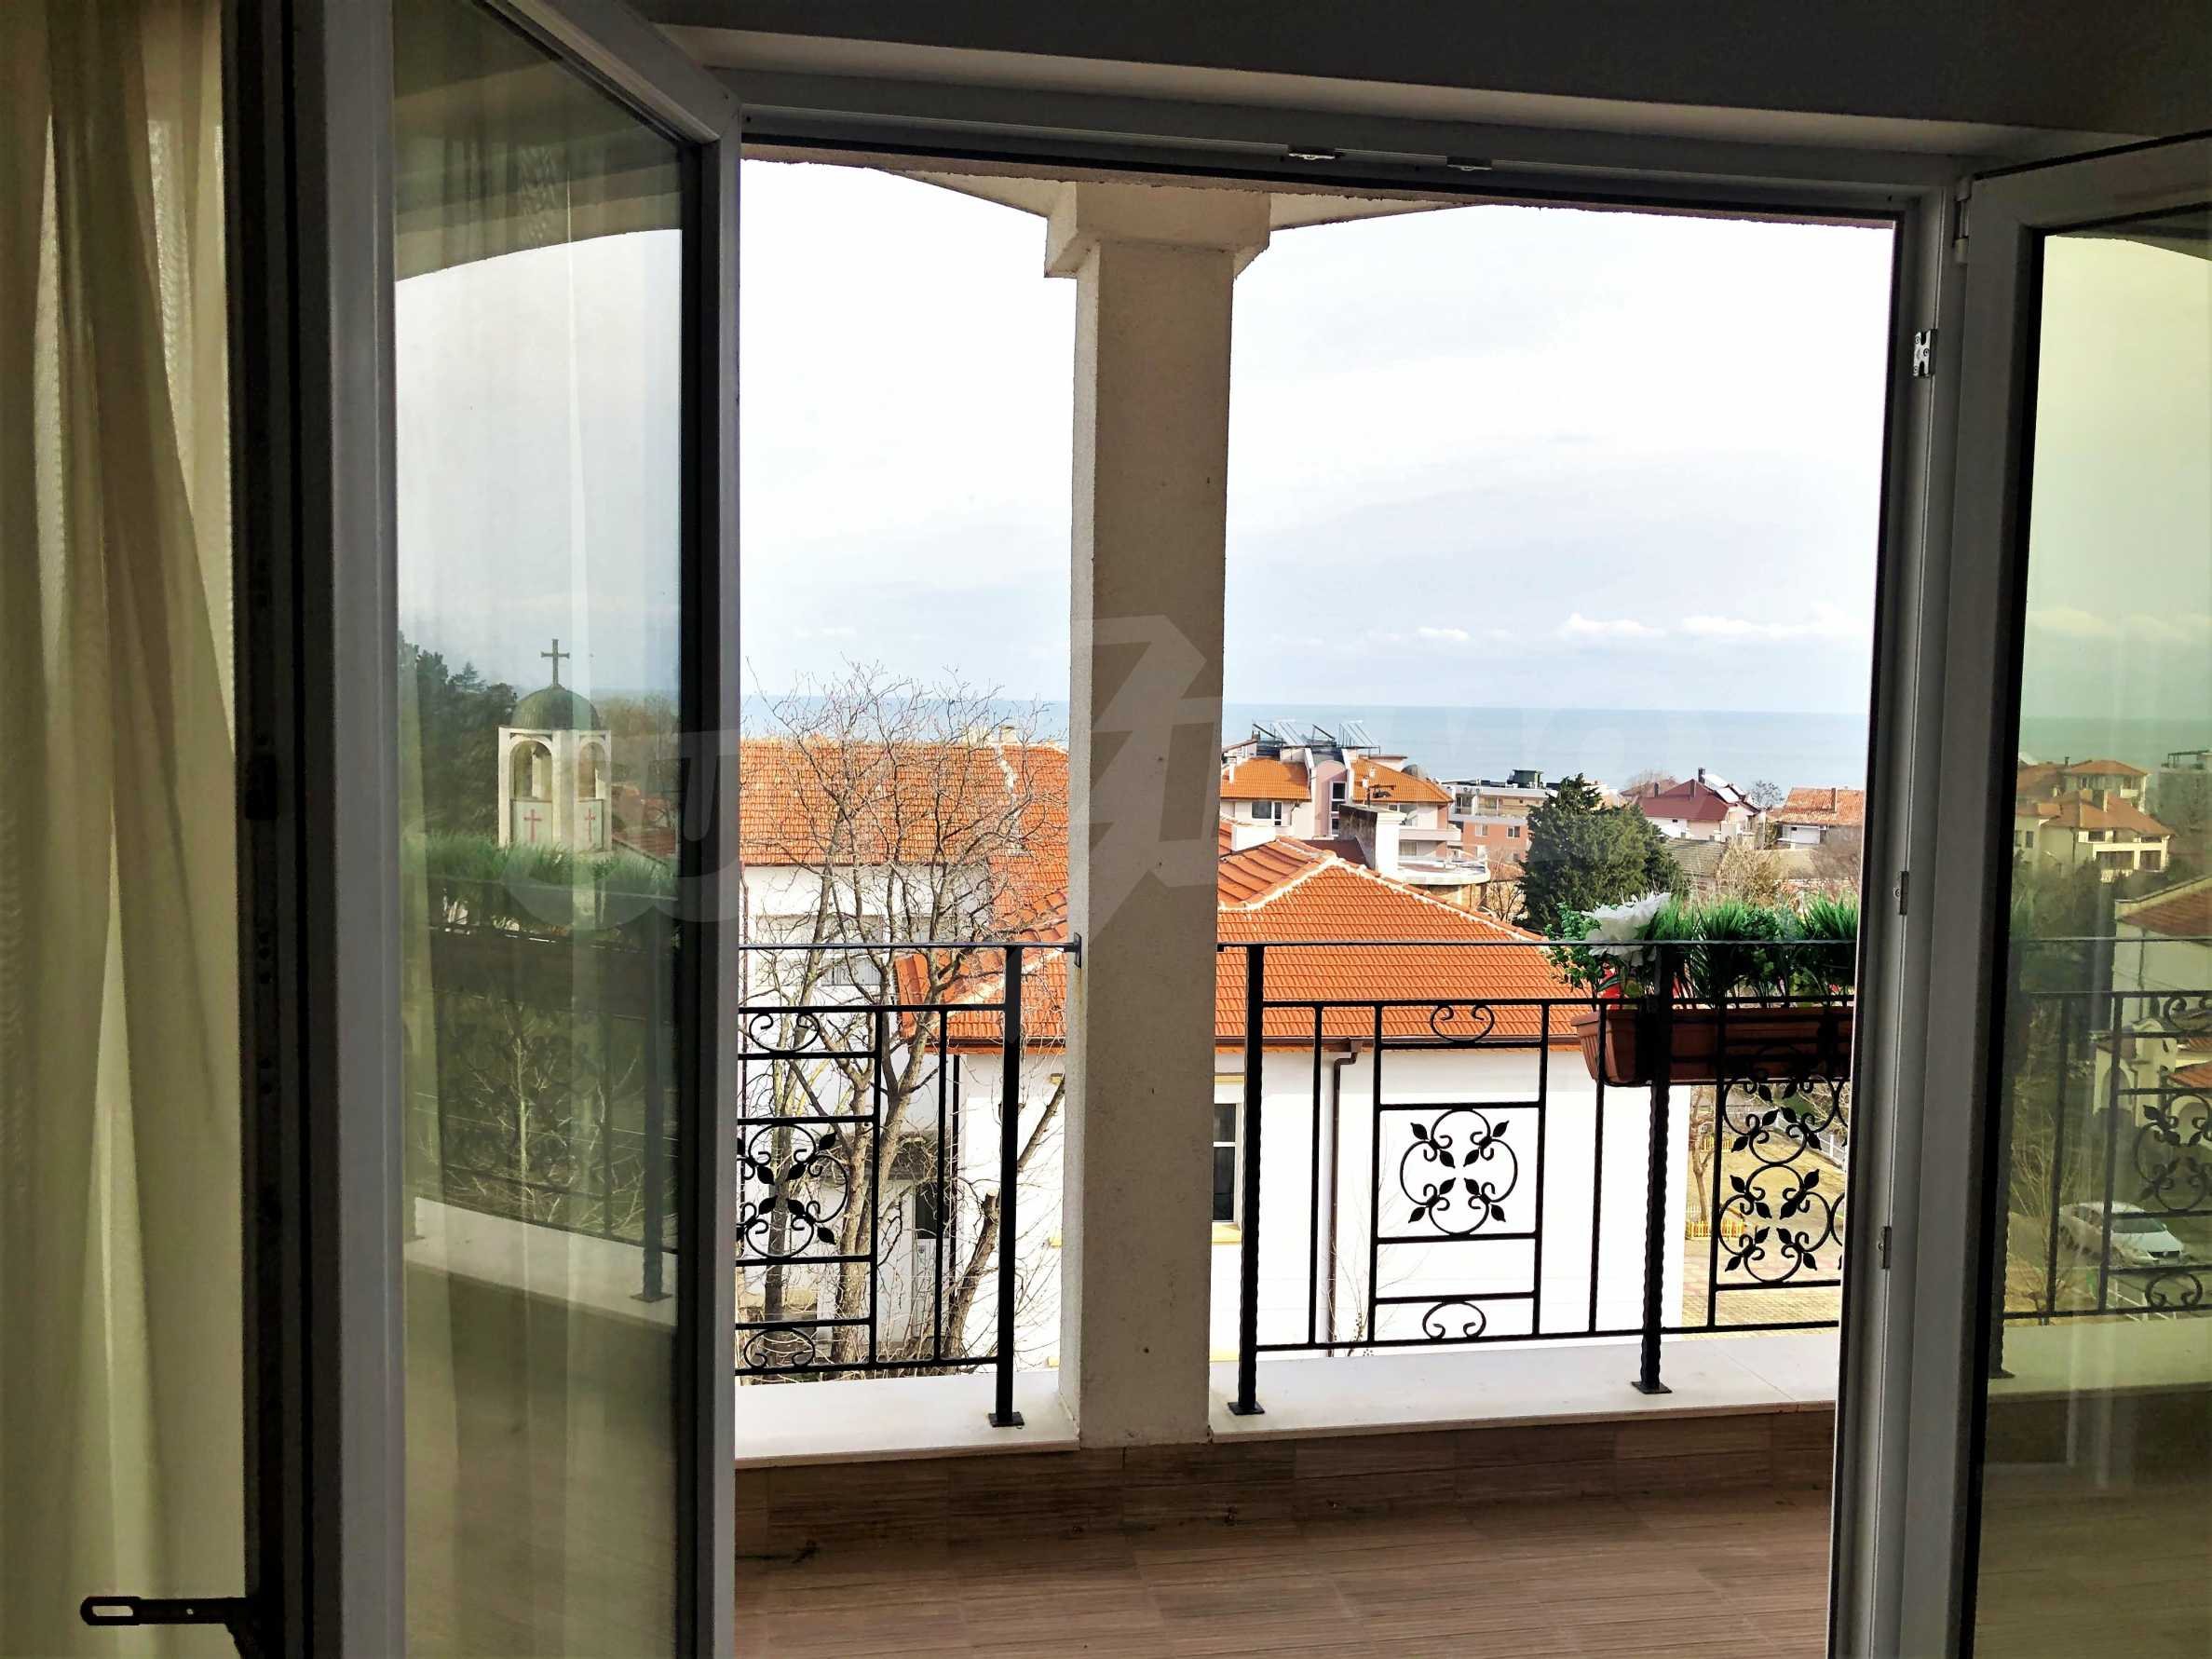 Apartment The Center - turnkey property with sea view, in the center of Obzor 2